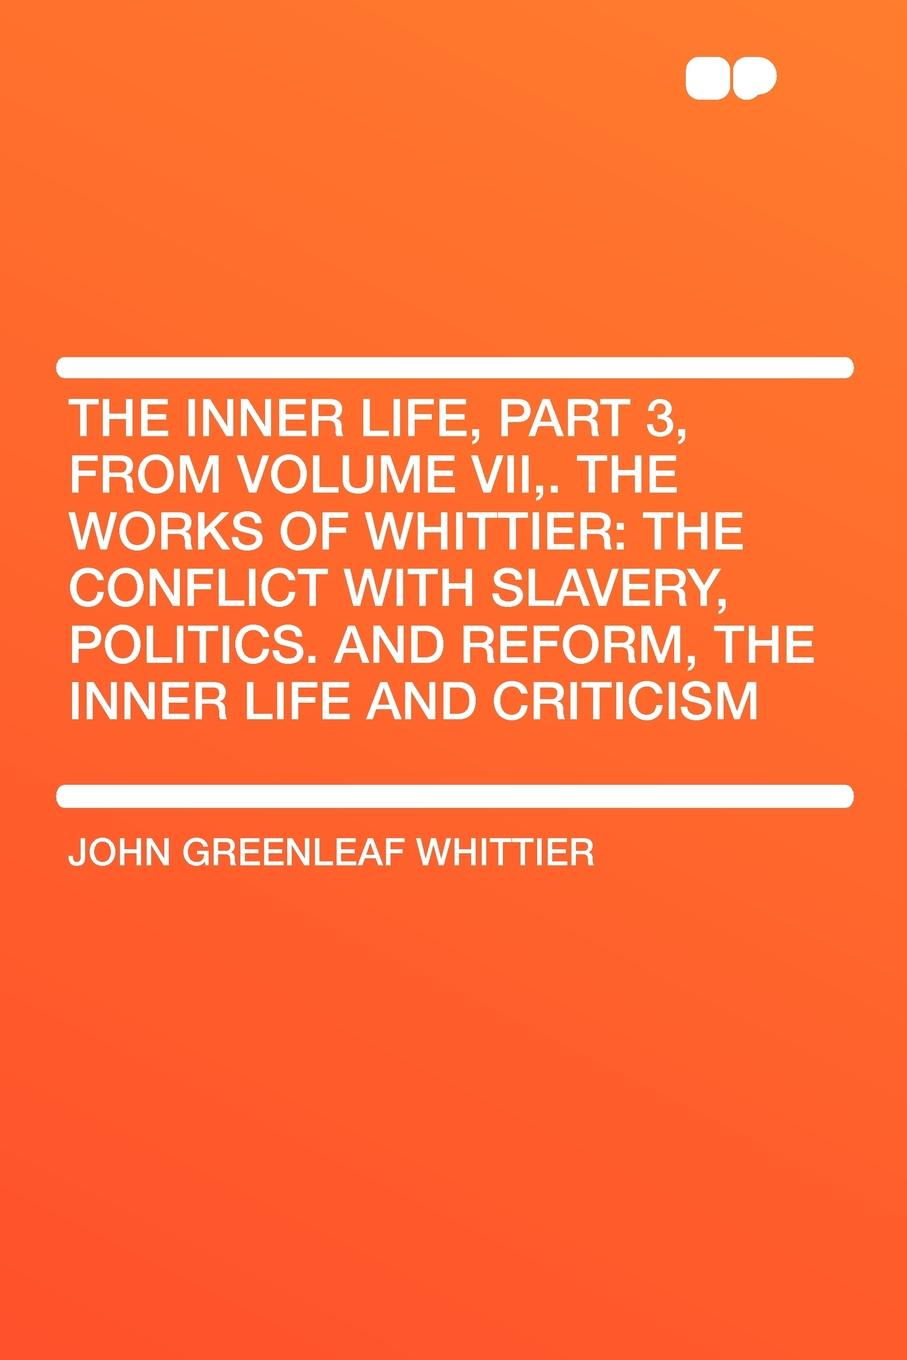 John Greenleaf Whittier The Inner Life, Part 3, from Volume VII,. The Works of Whittier. the Conflict with Slavery, Politics. and Reform, the Inner Life and Criticism john brademas the politics of education conflict and consensus on capitol hill